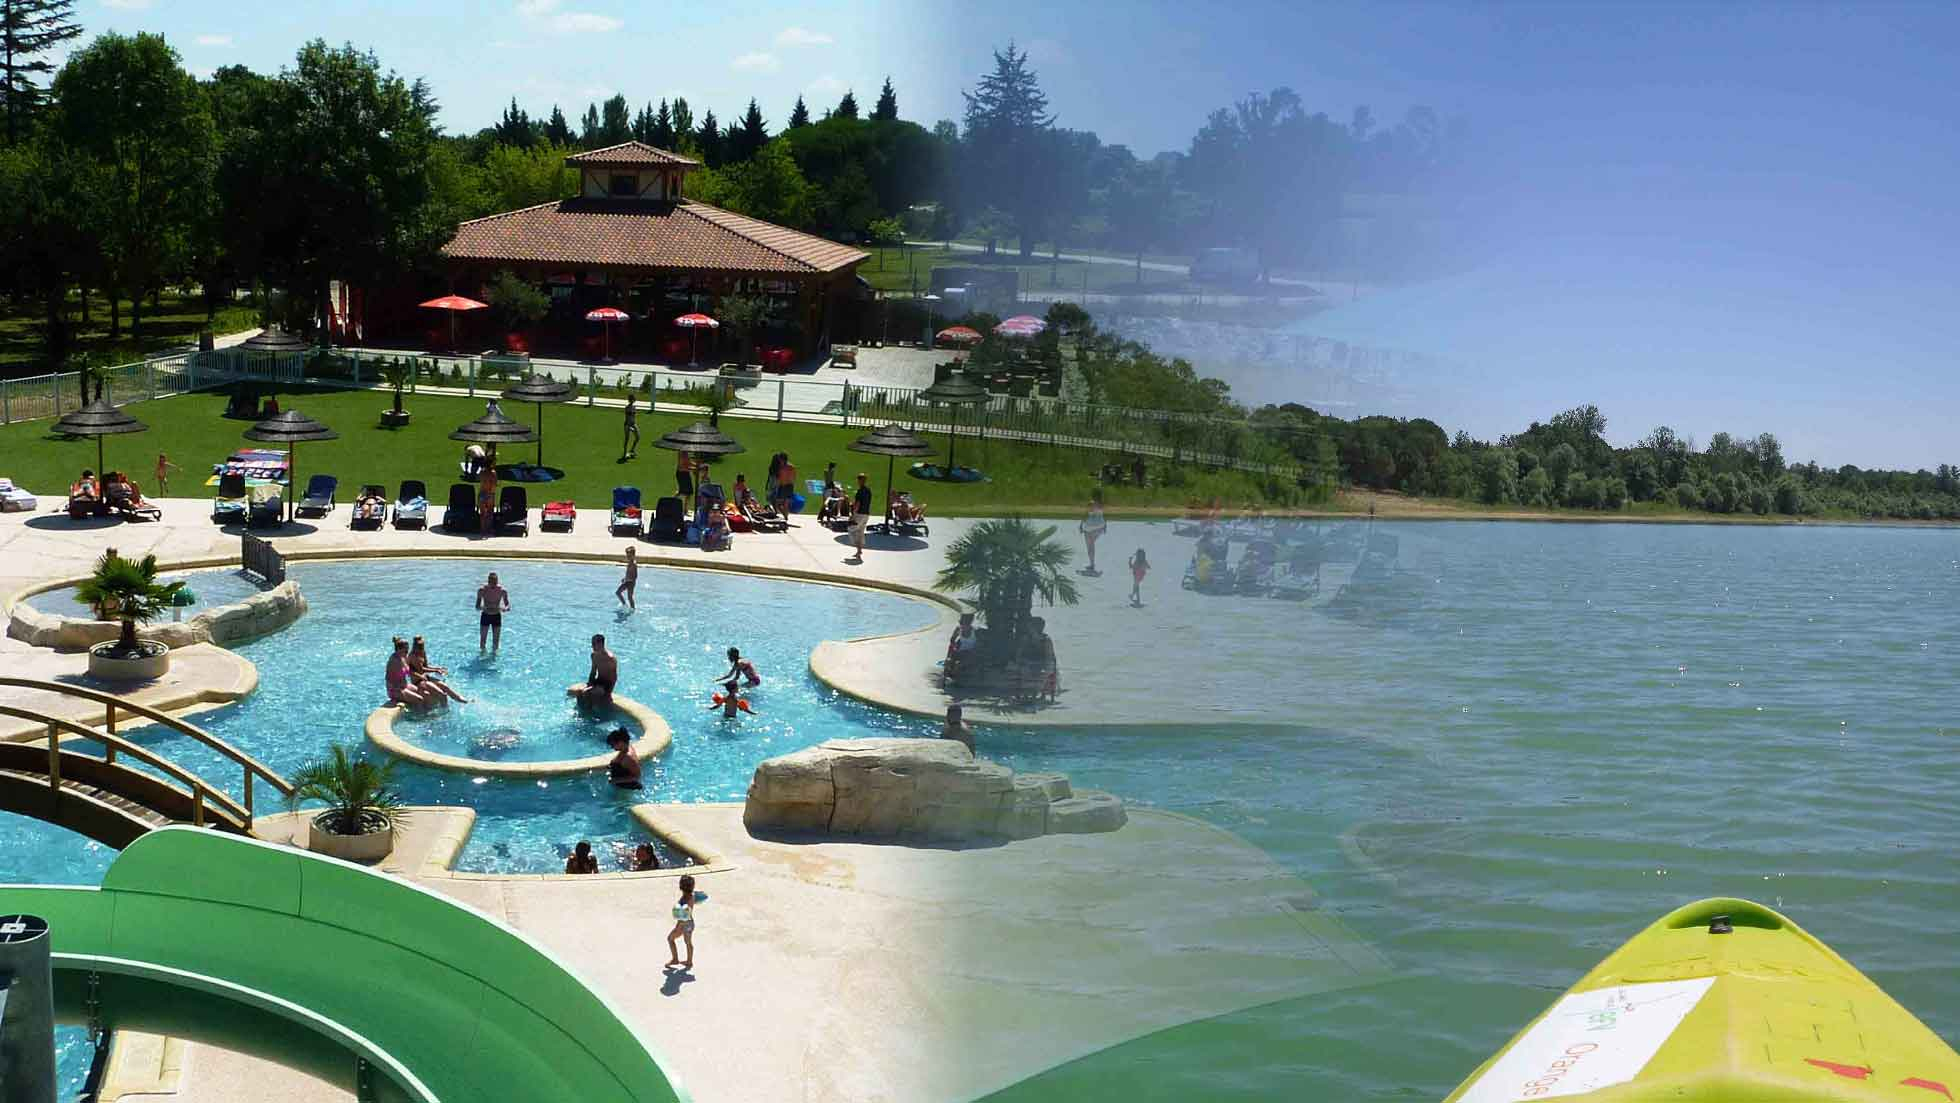 Campsite France On A Lake, South Of France, Water Park ... serapportantà Camping Var Avec Piscine